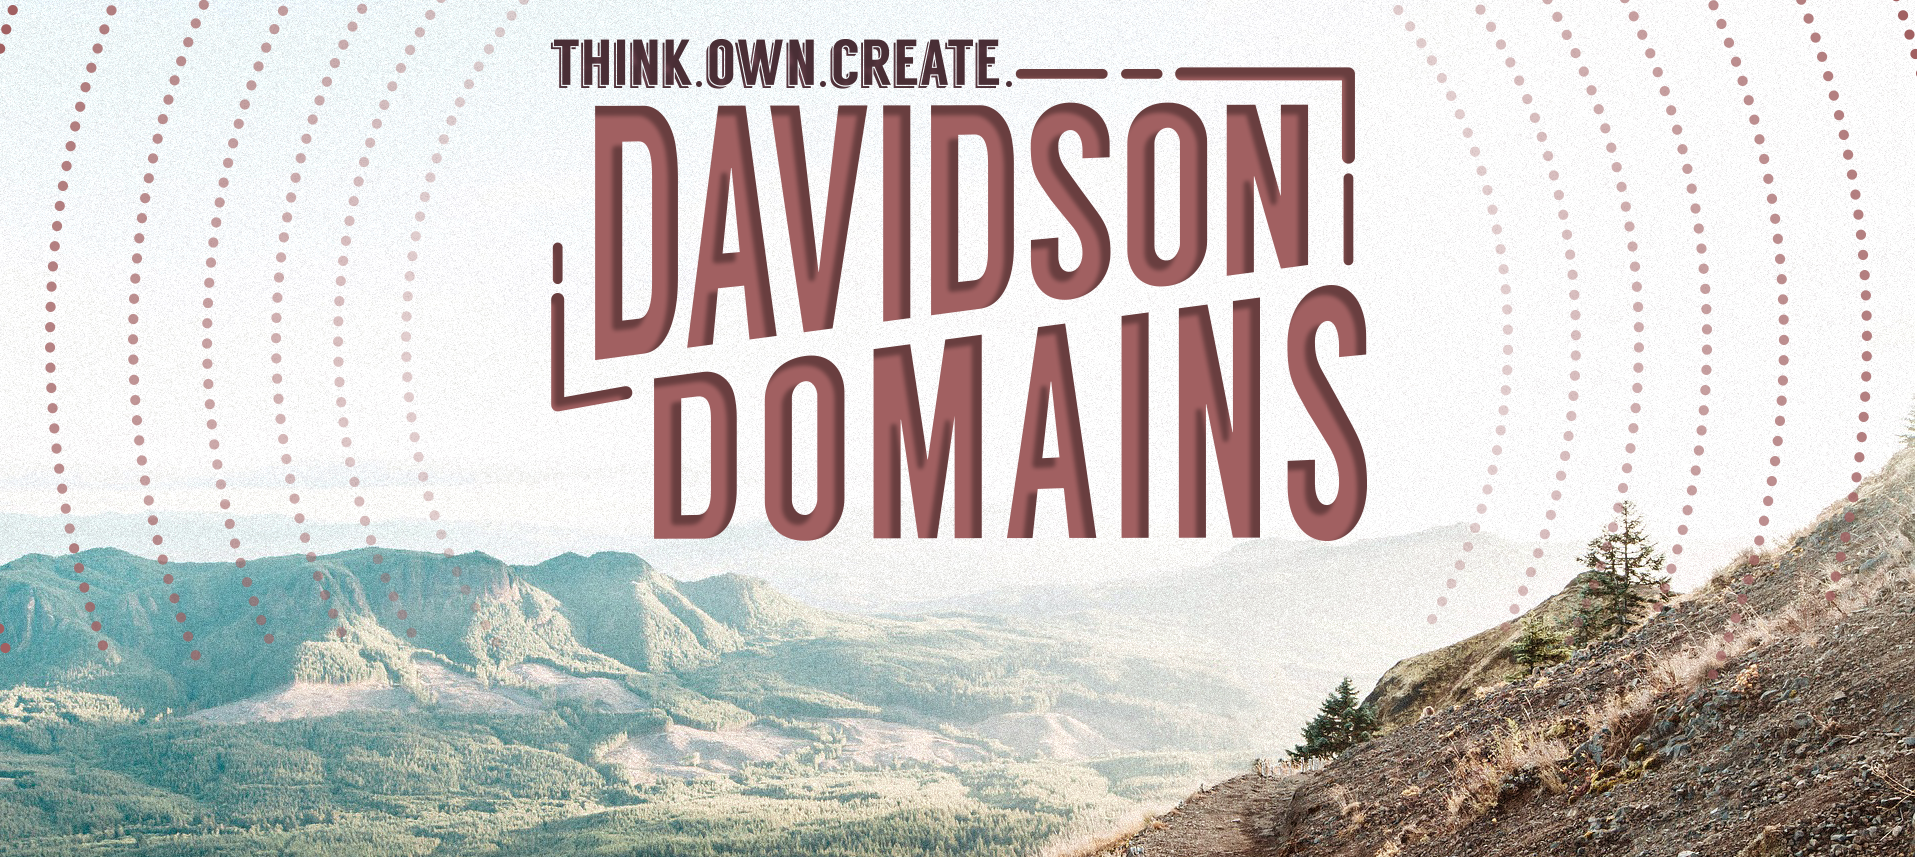 Think. Own. Create. Davidson Domains. Scenic Mountains.